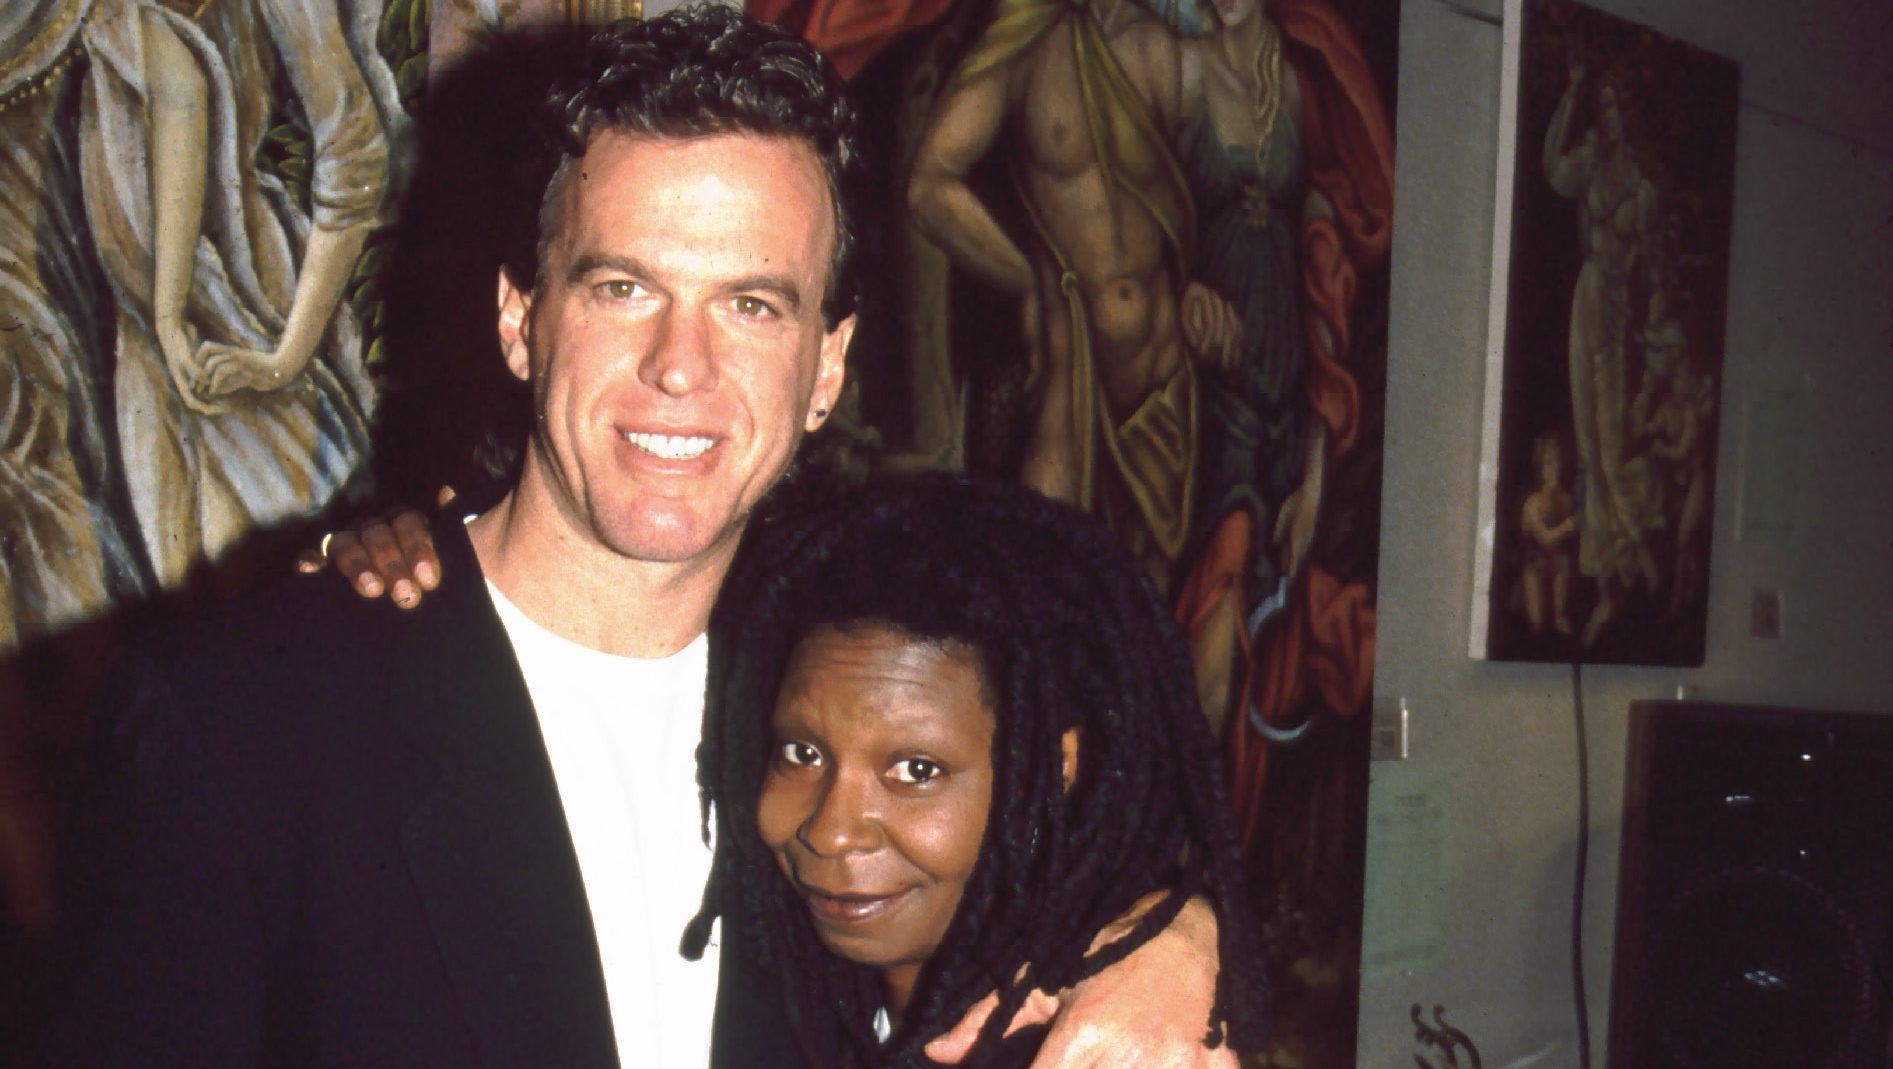 Goldberg whoopi dating is who Meet the